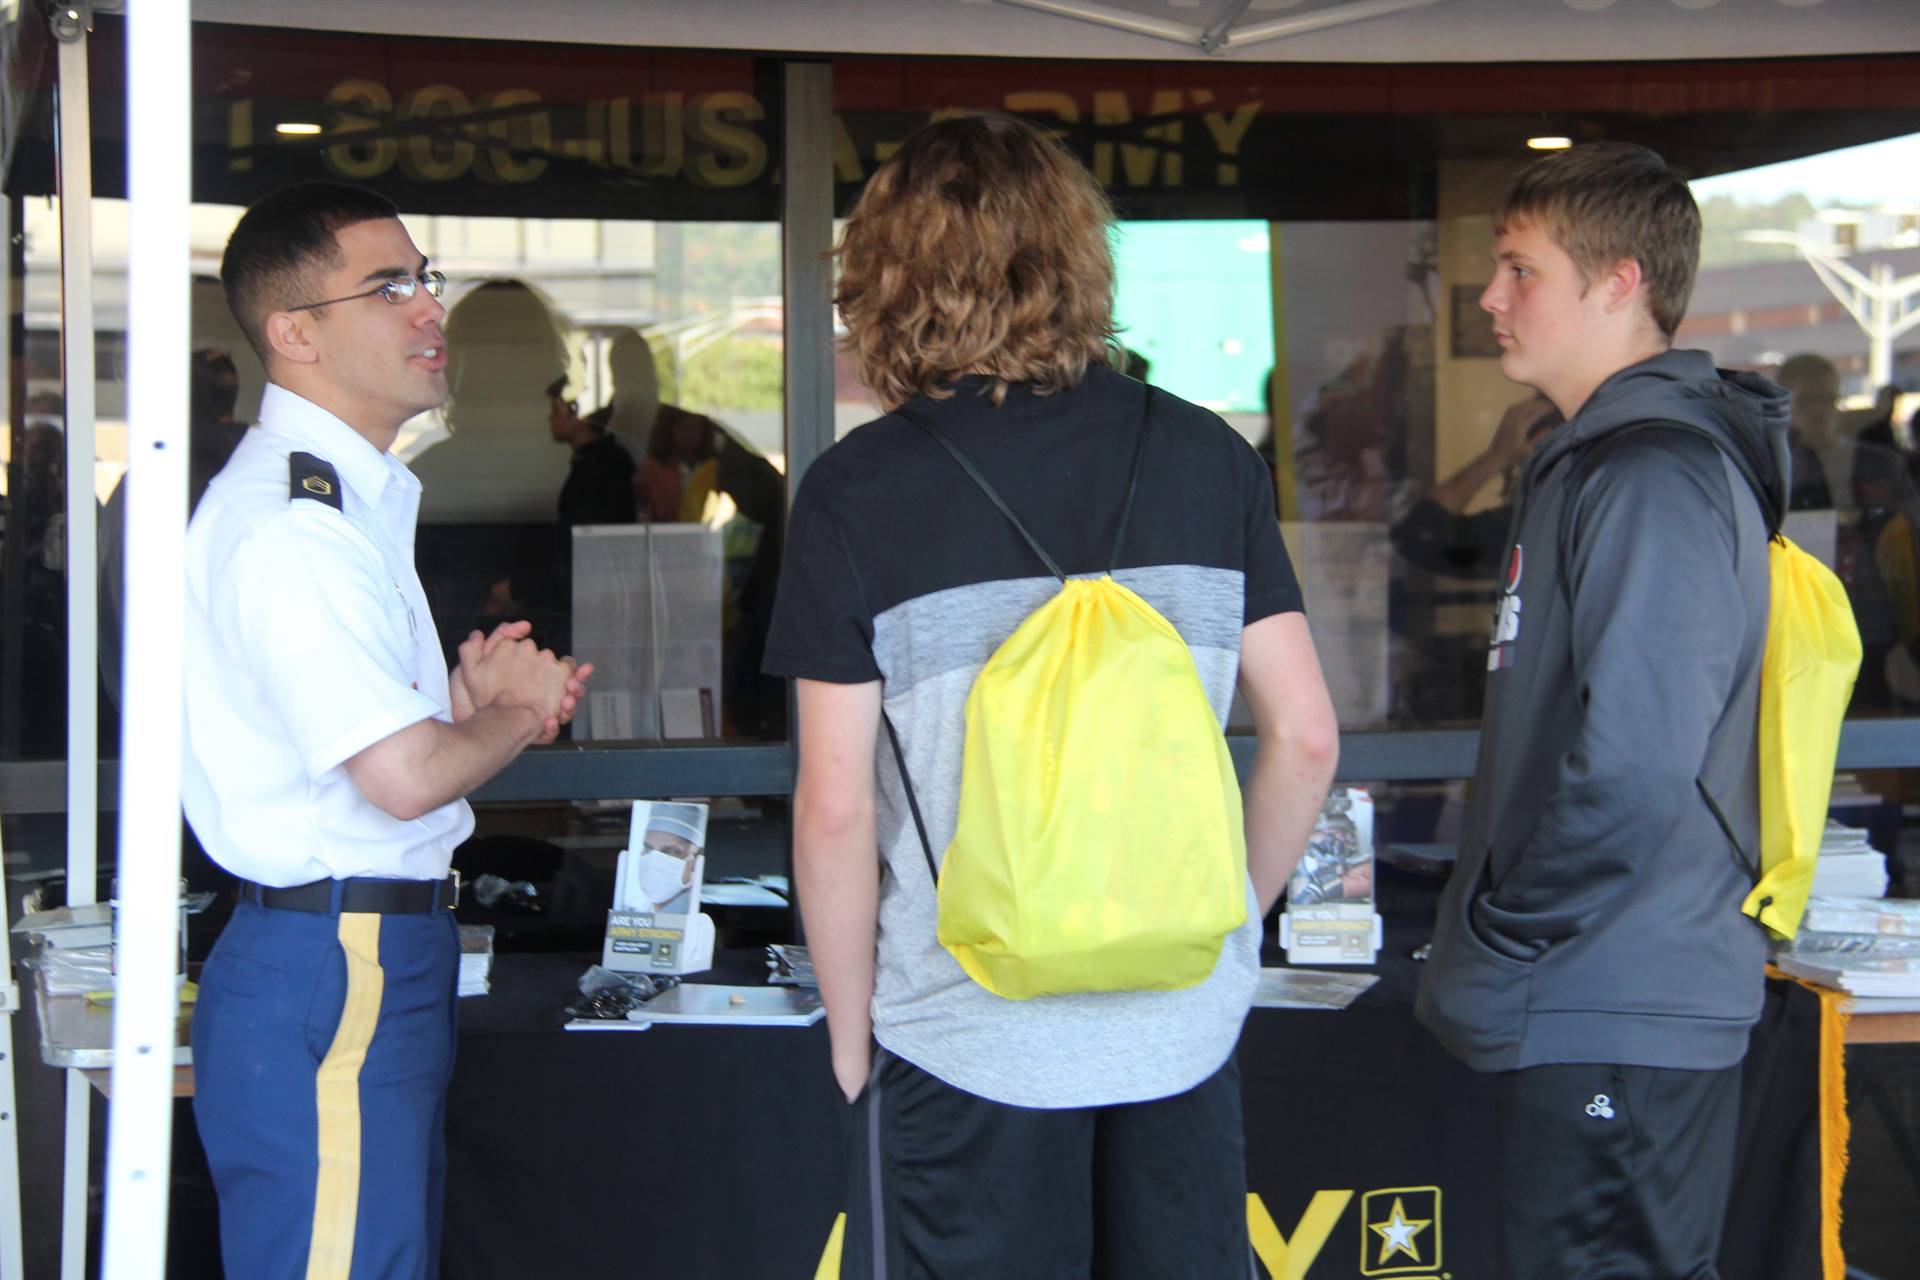 chenango valley high school students talk to military representative at college day